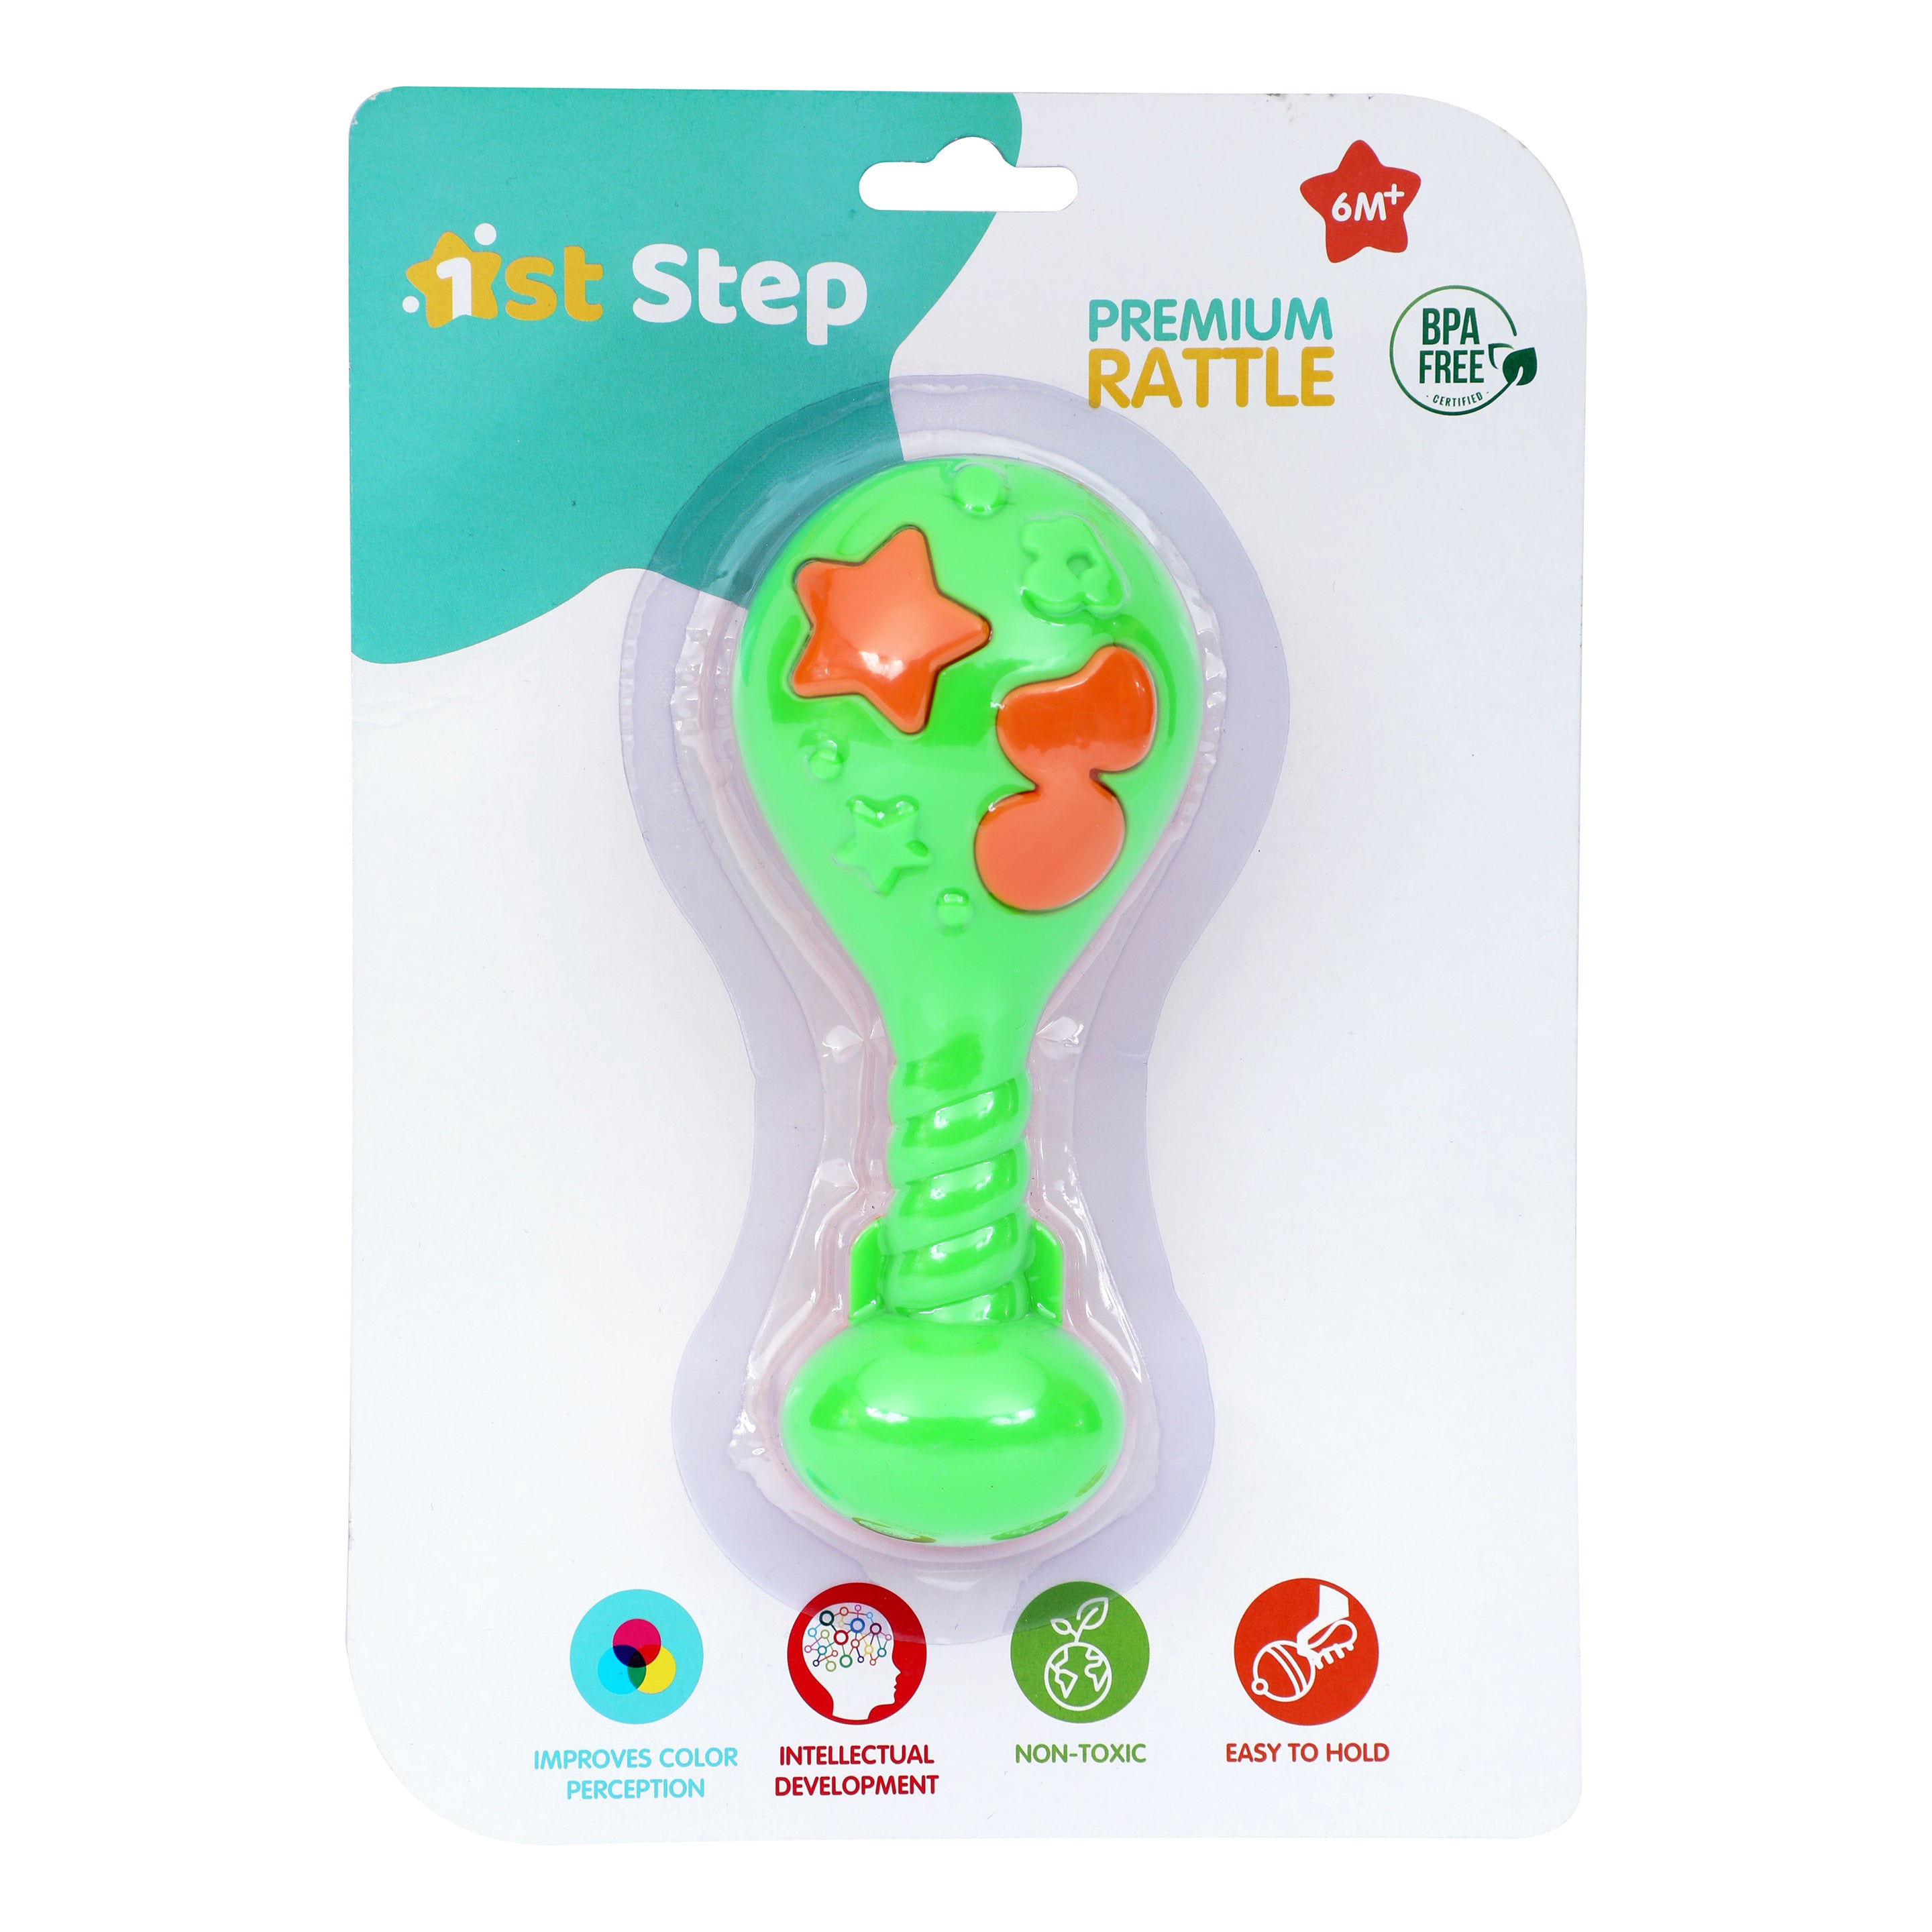 1st Step Premium Maracus Rattle - Green